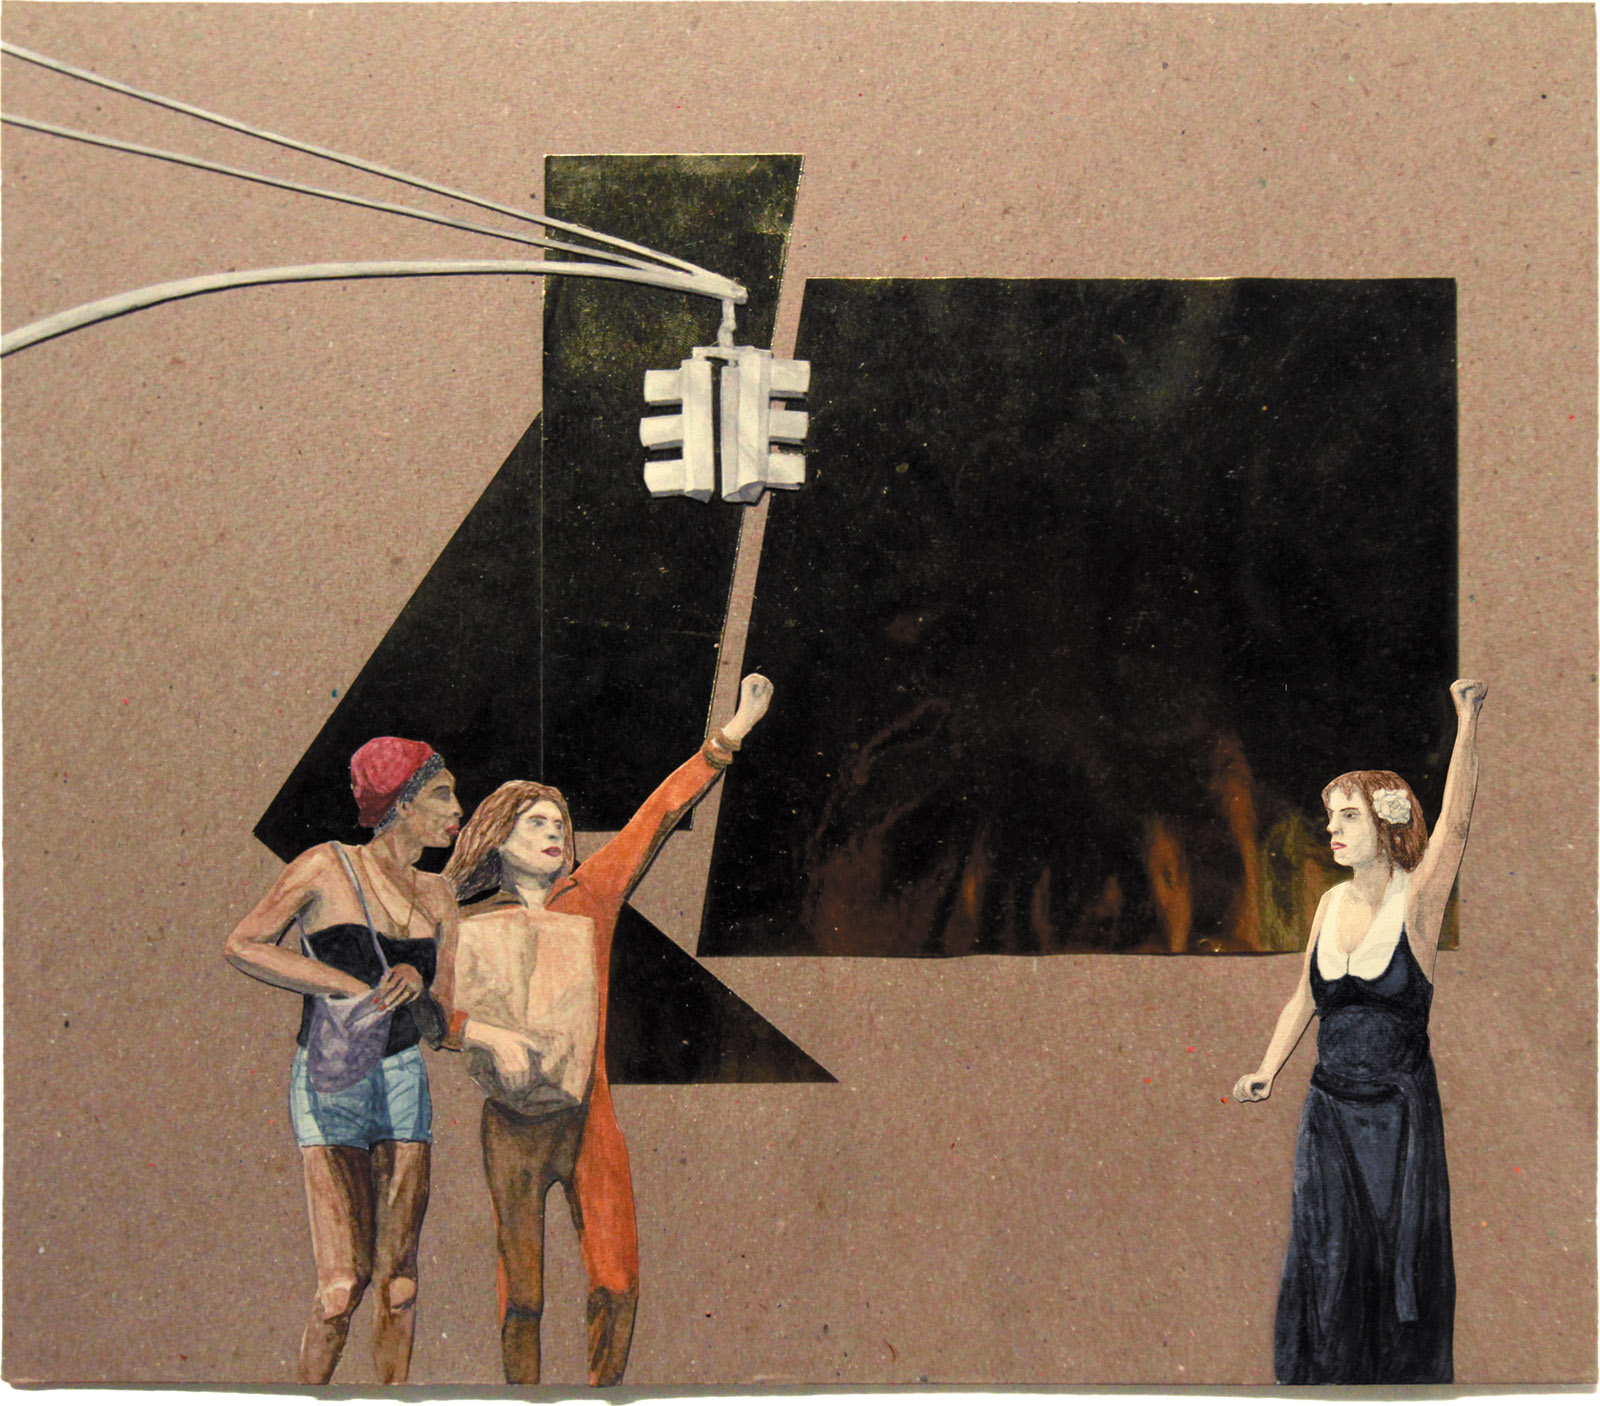 S.T.A.R., 2012, a painting of trans-justice activists by Tuesday Smillie